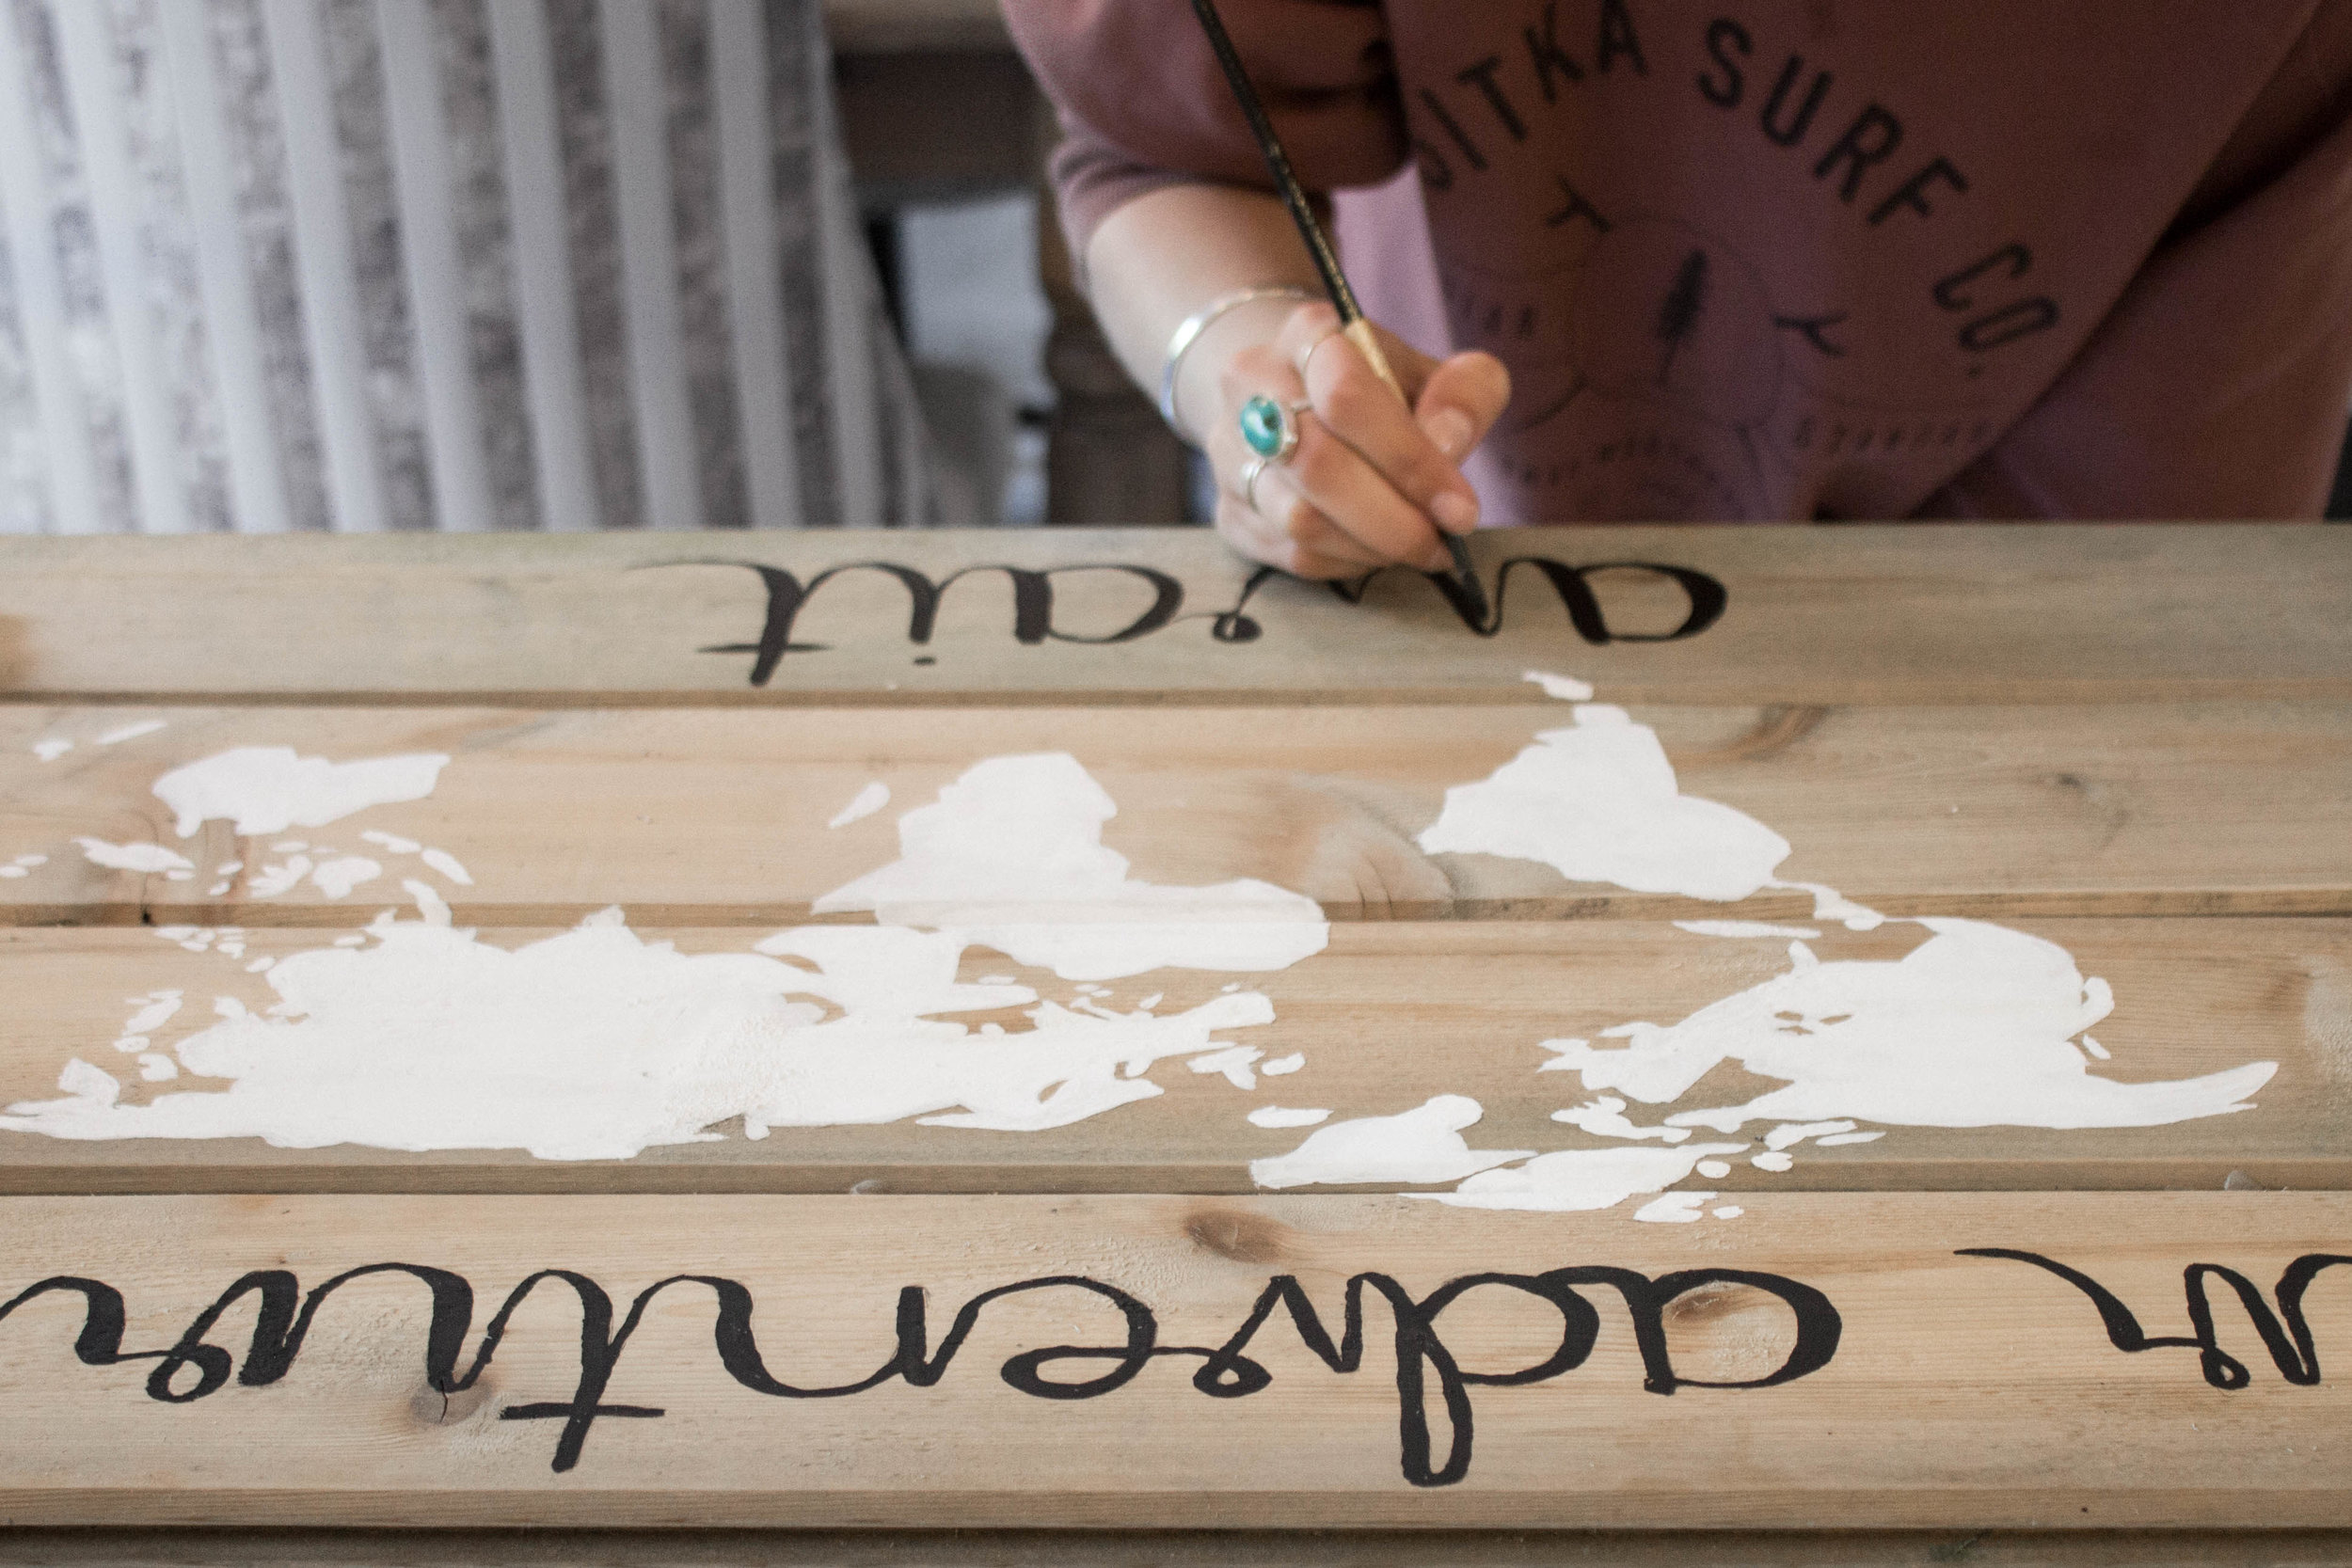 step-4a-paint-the-letters